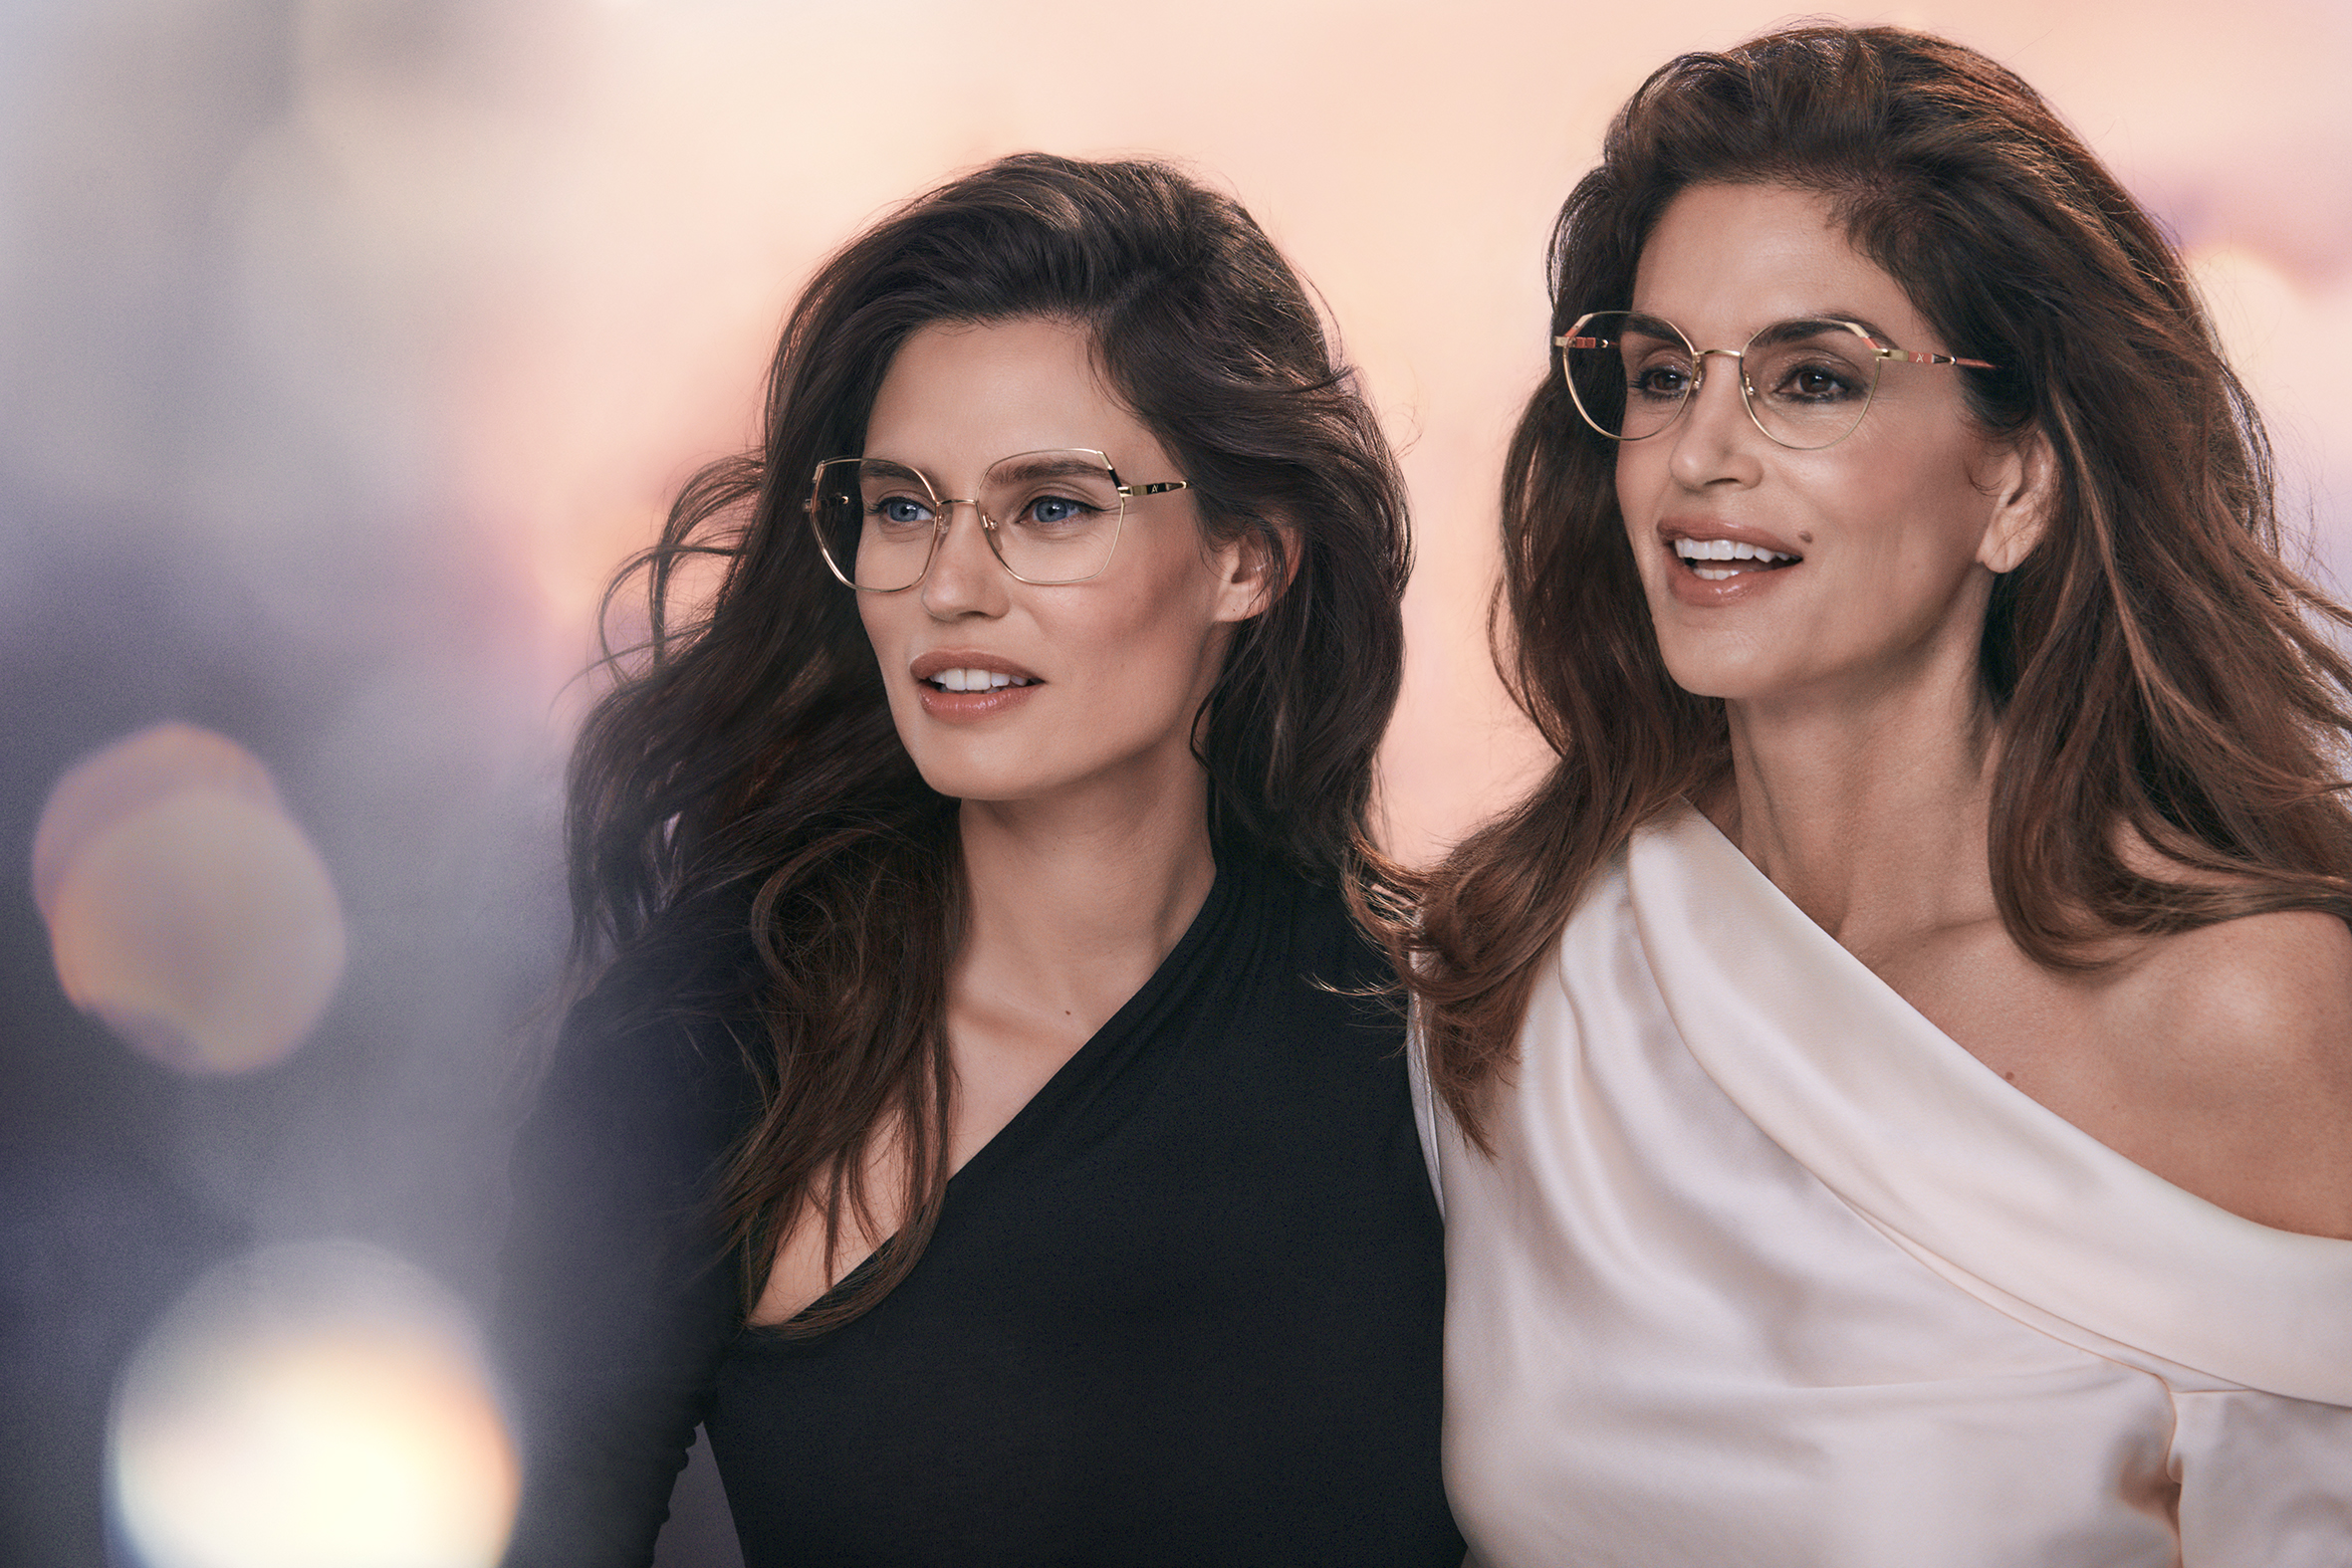 Cindy Crawford and Bianca Balti fronting the ad campaign for De Rigo's newly launched Yalea house brand.